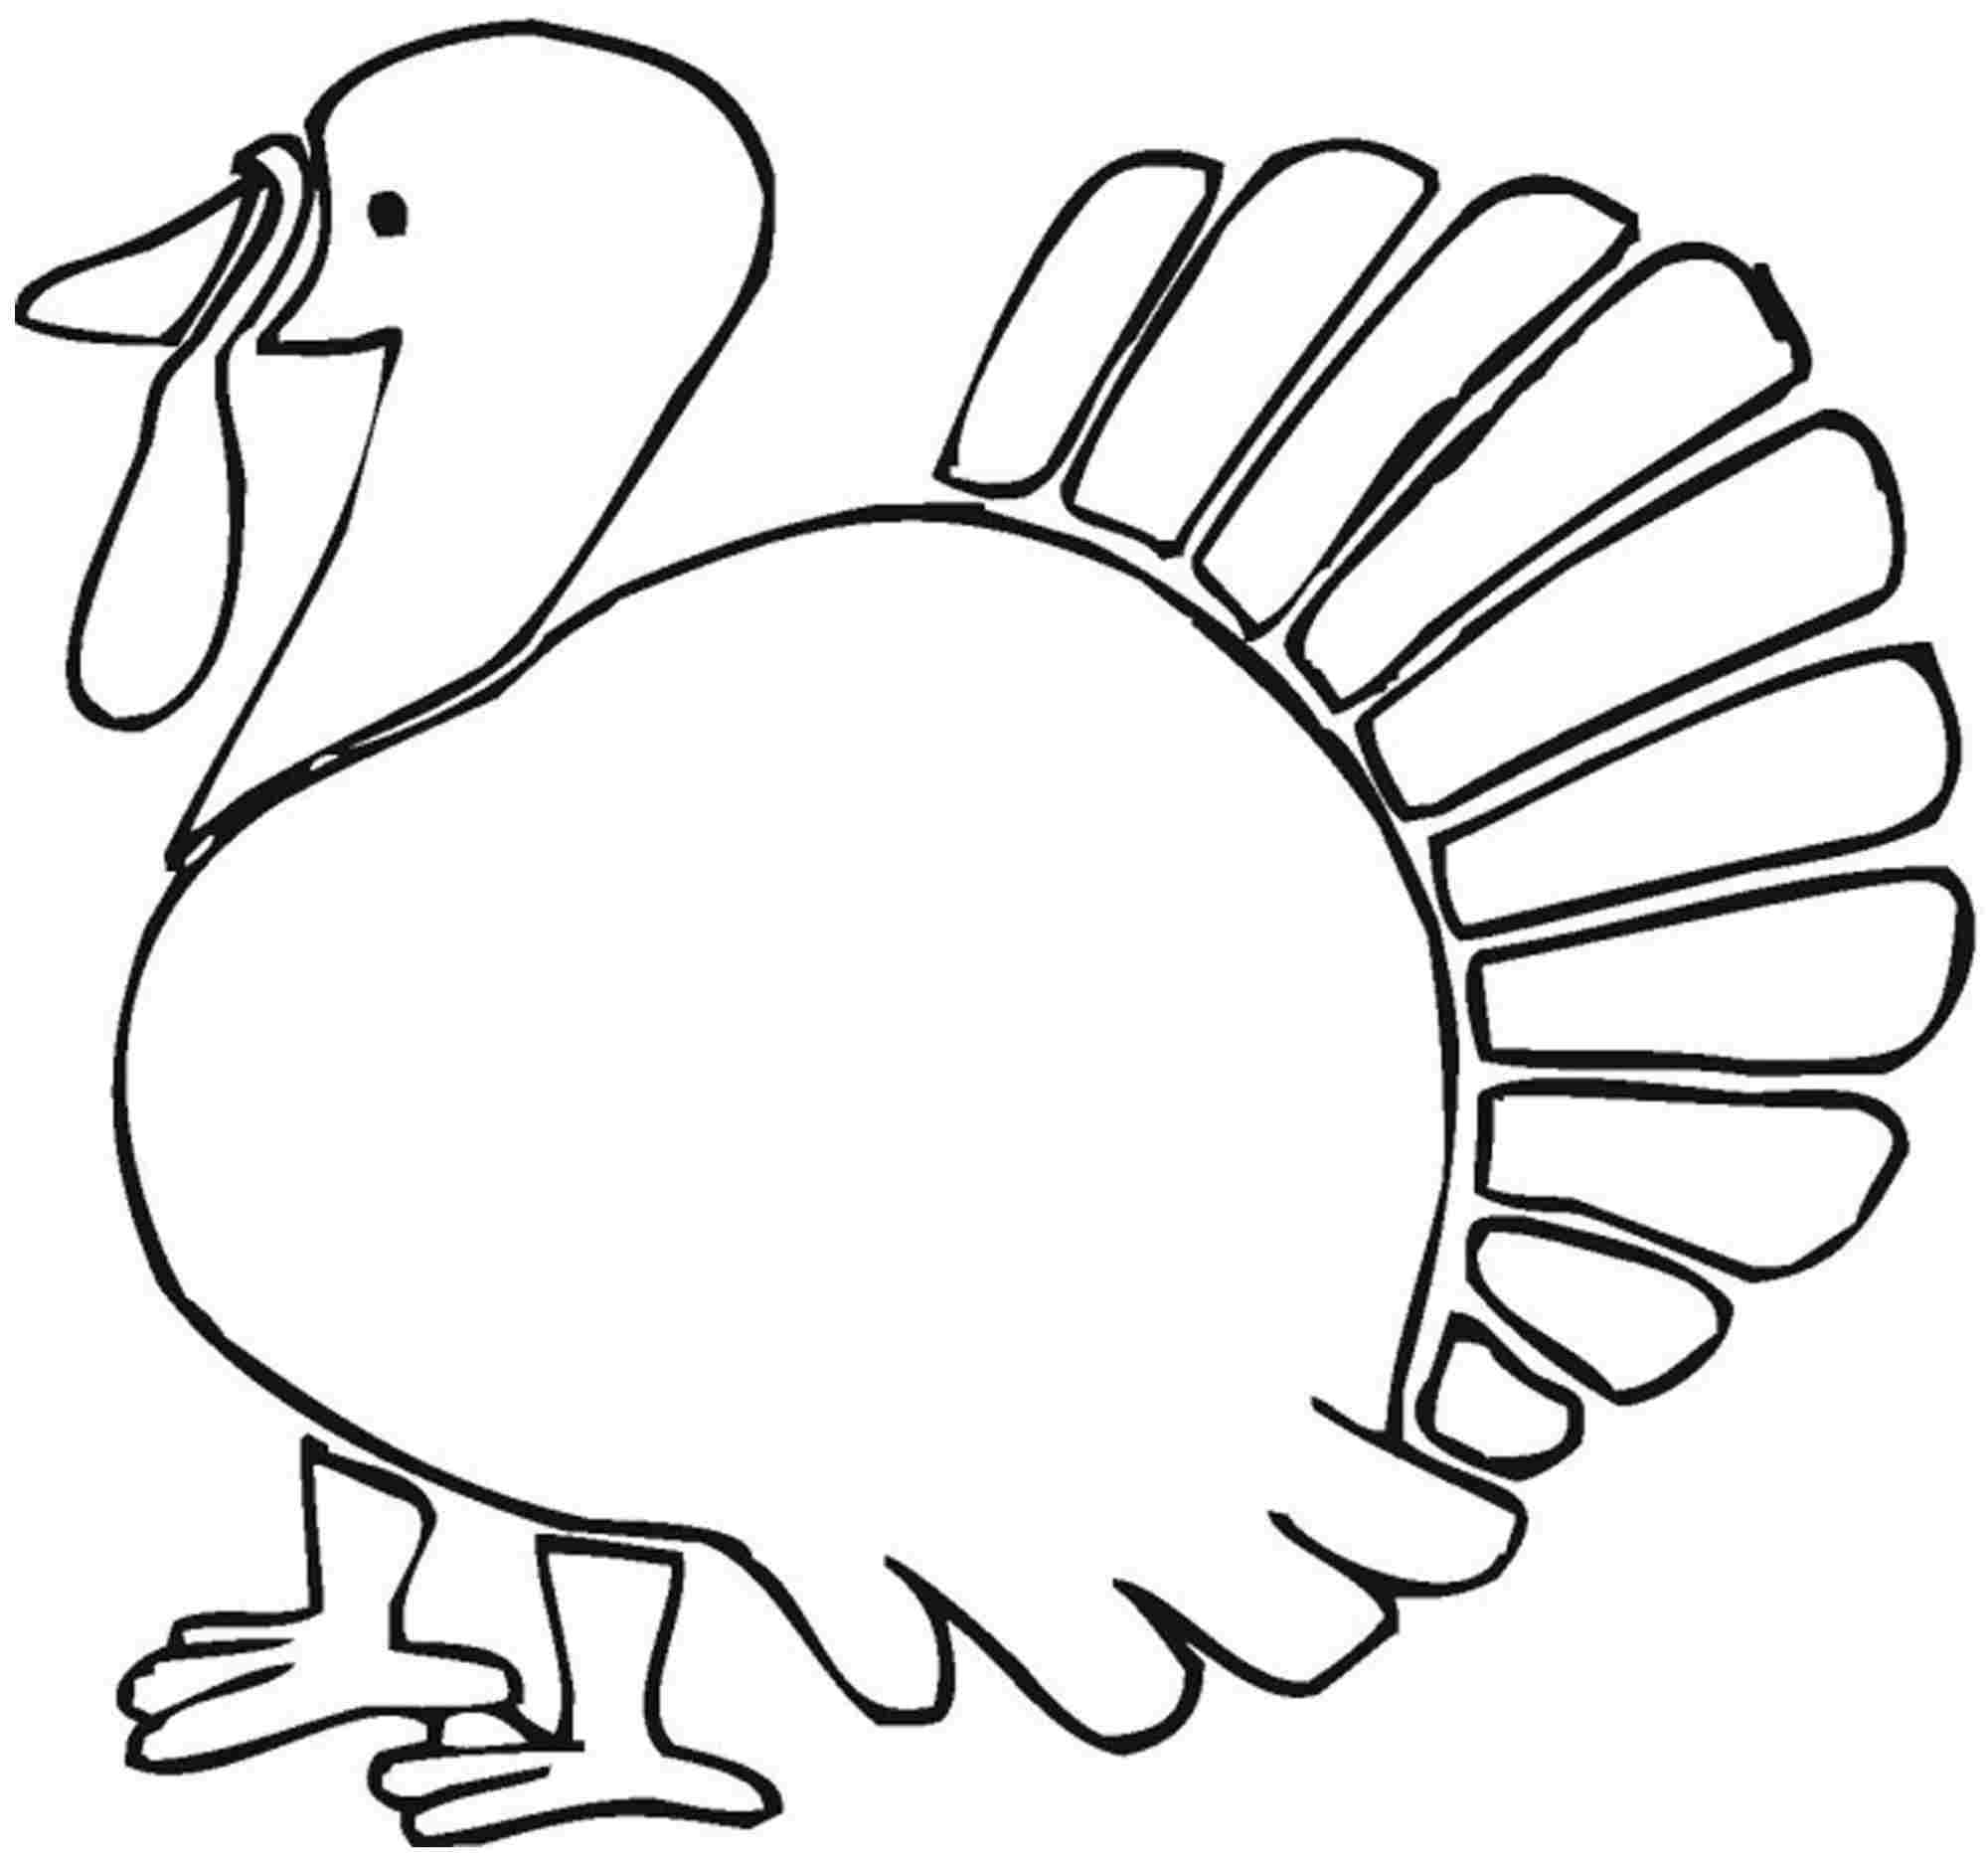 Color Turkey Drawing at GetDrawings.com | Free for personal use ...